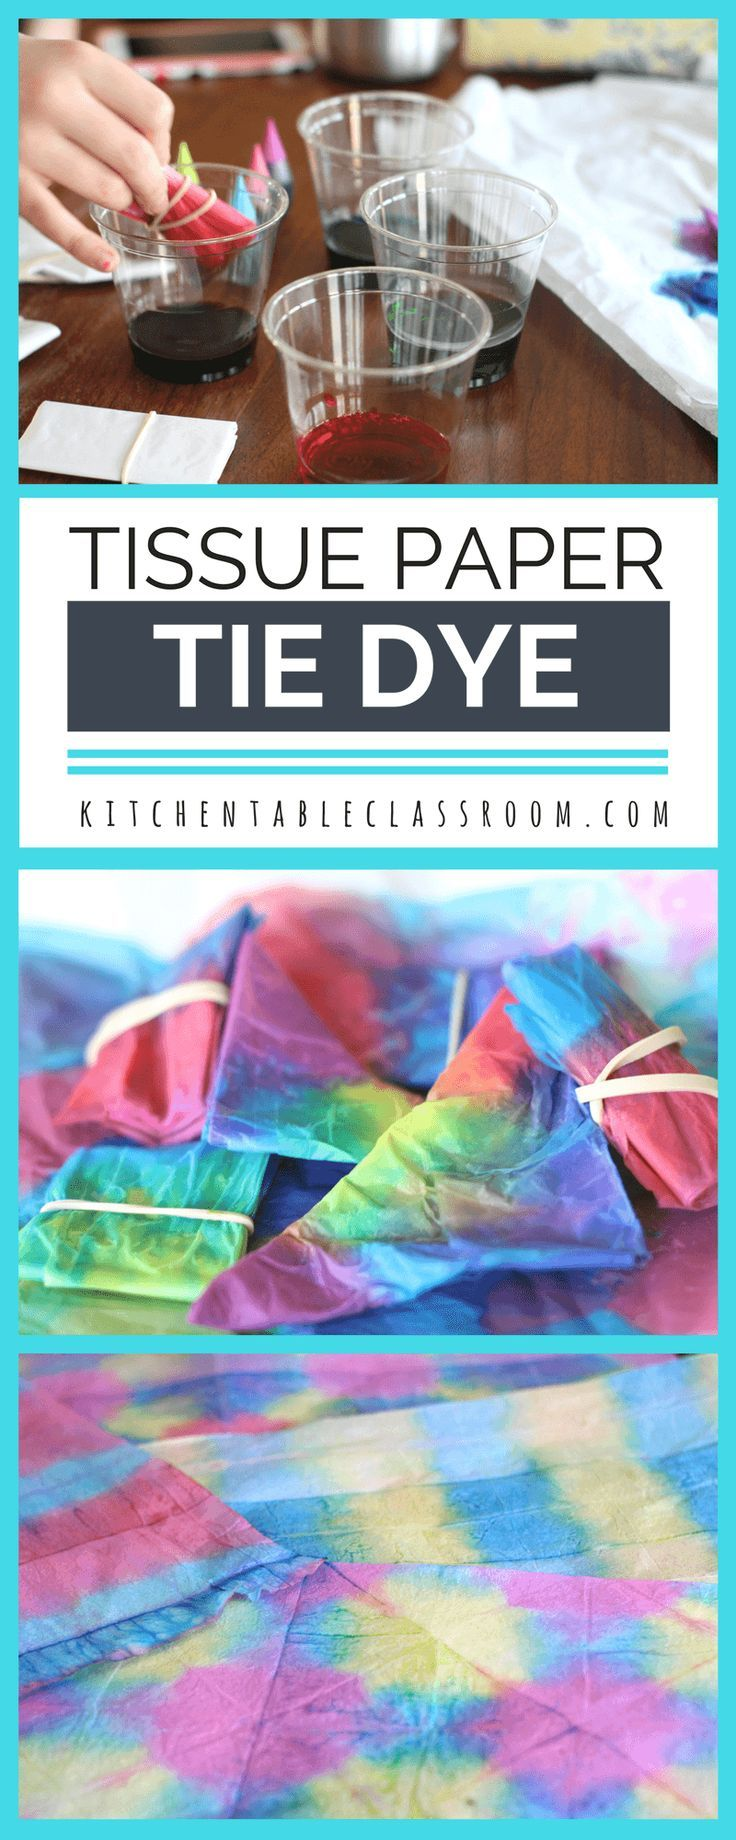 c32c60fe7bc3 Tie is always a huge hit at our house but the mess...not so much. Try this  tissue paper dye using liquid food coloring. Beautiful colors and awesome  ...